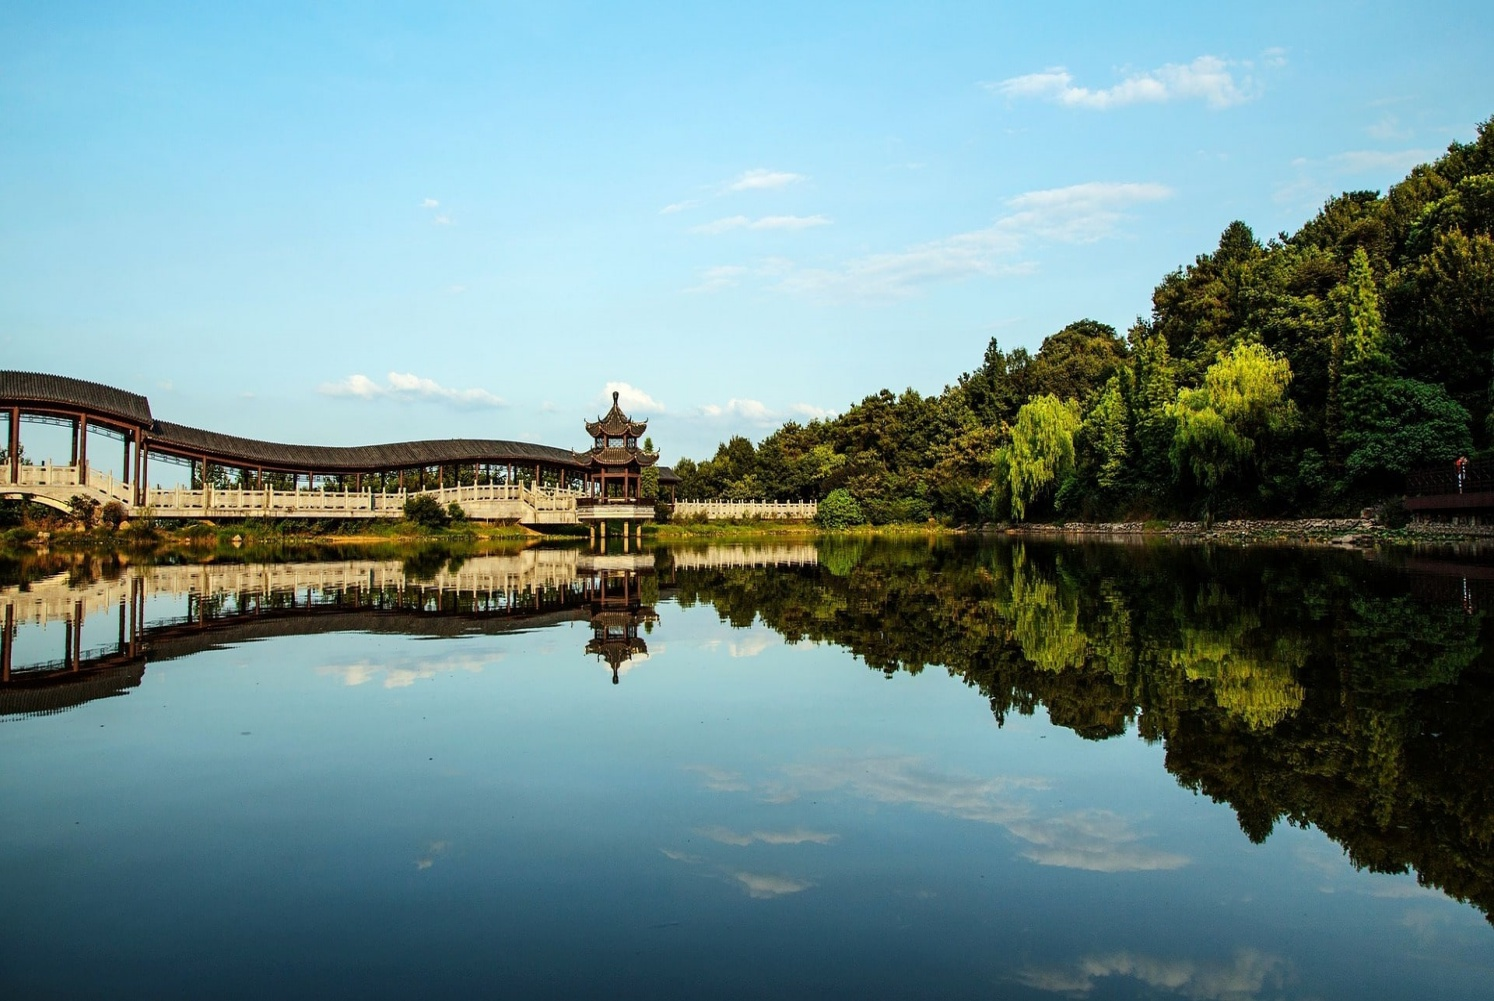 Day 6: Changsha- Mount Yuelu - Stretch your legs with a scenic walk in this Mountain Park. Peek down at Changsha through the trees at the summit or take in the view on the chair lift back down. Just make sure you work up an appetite!